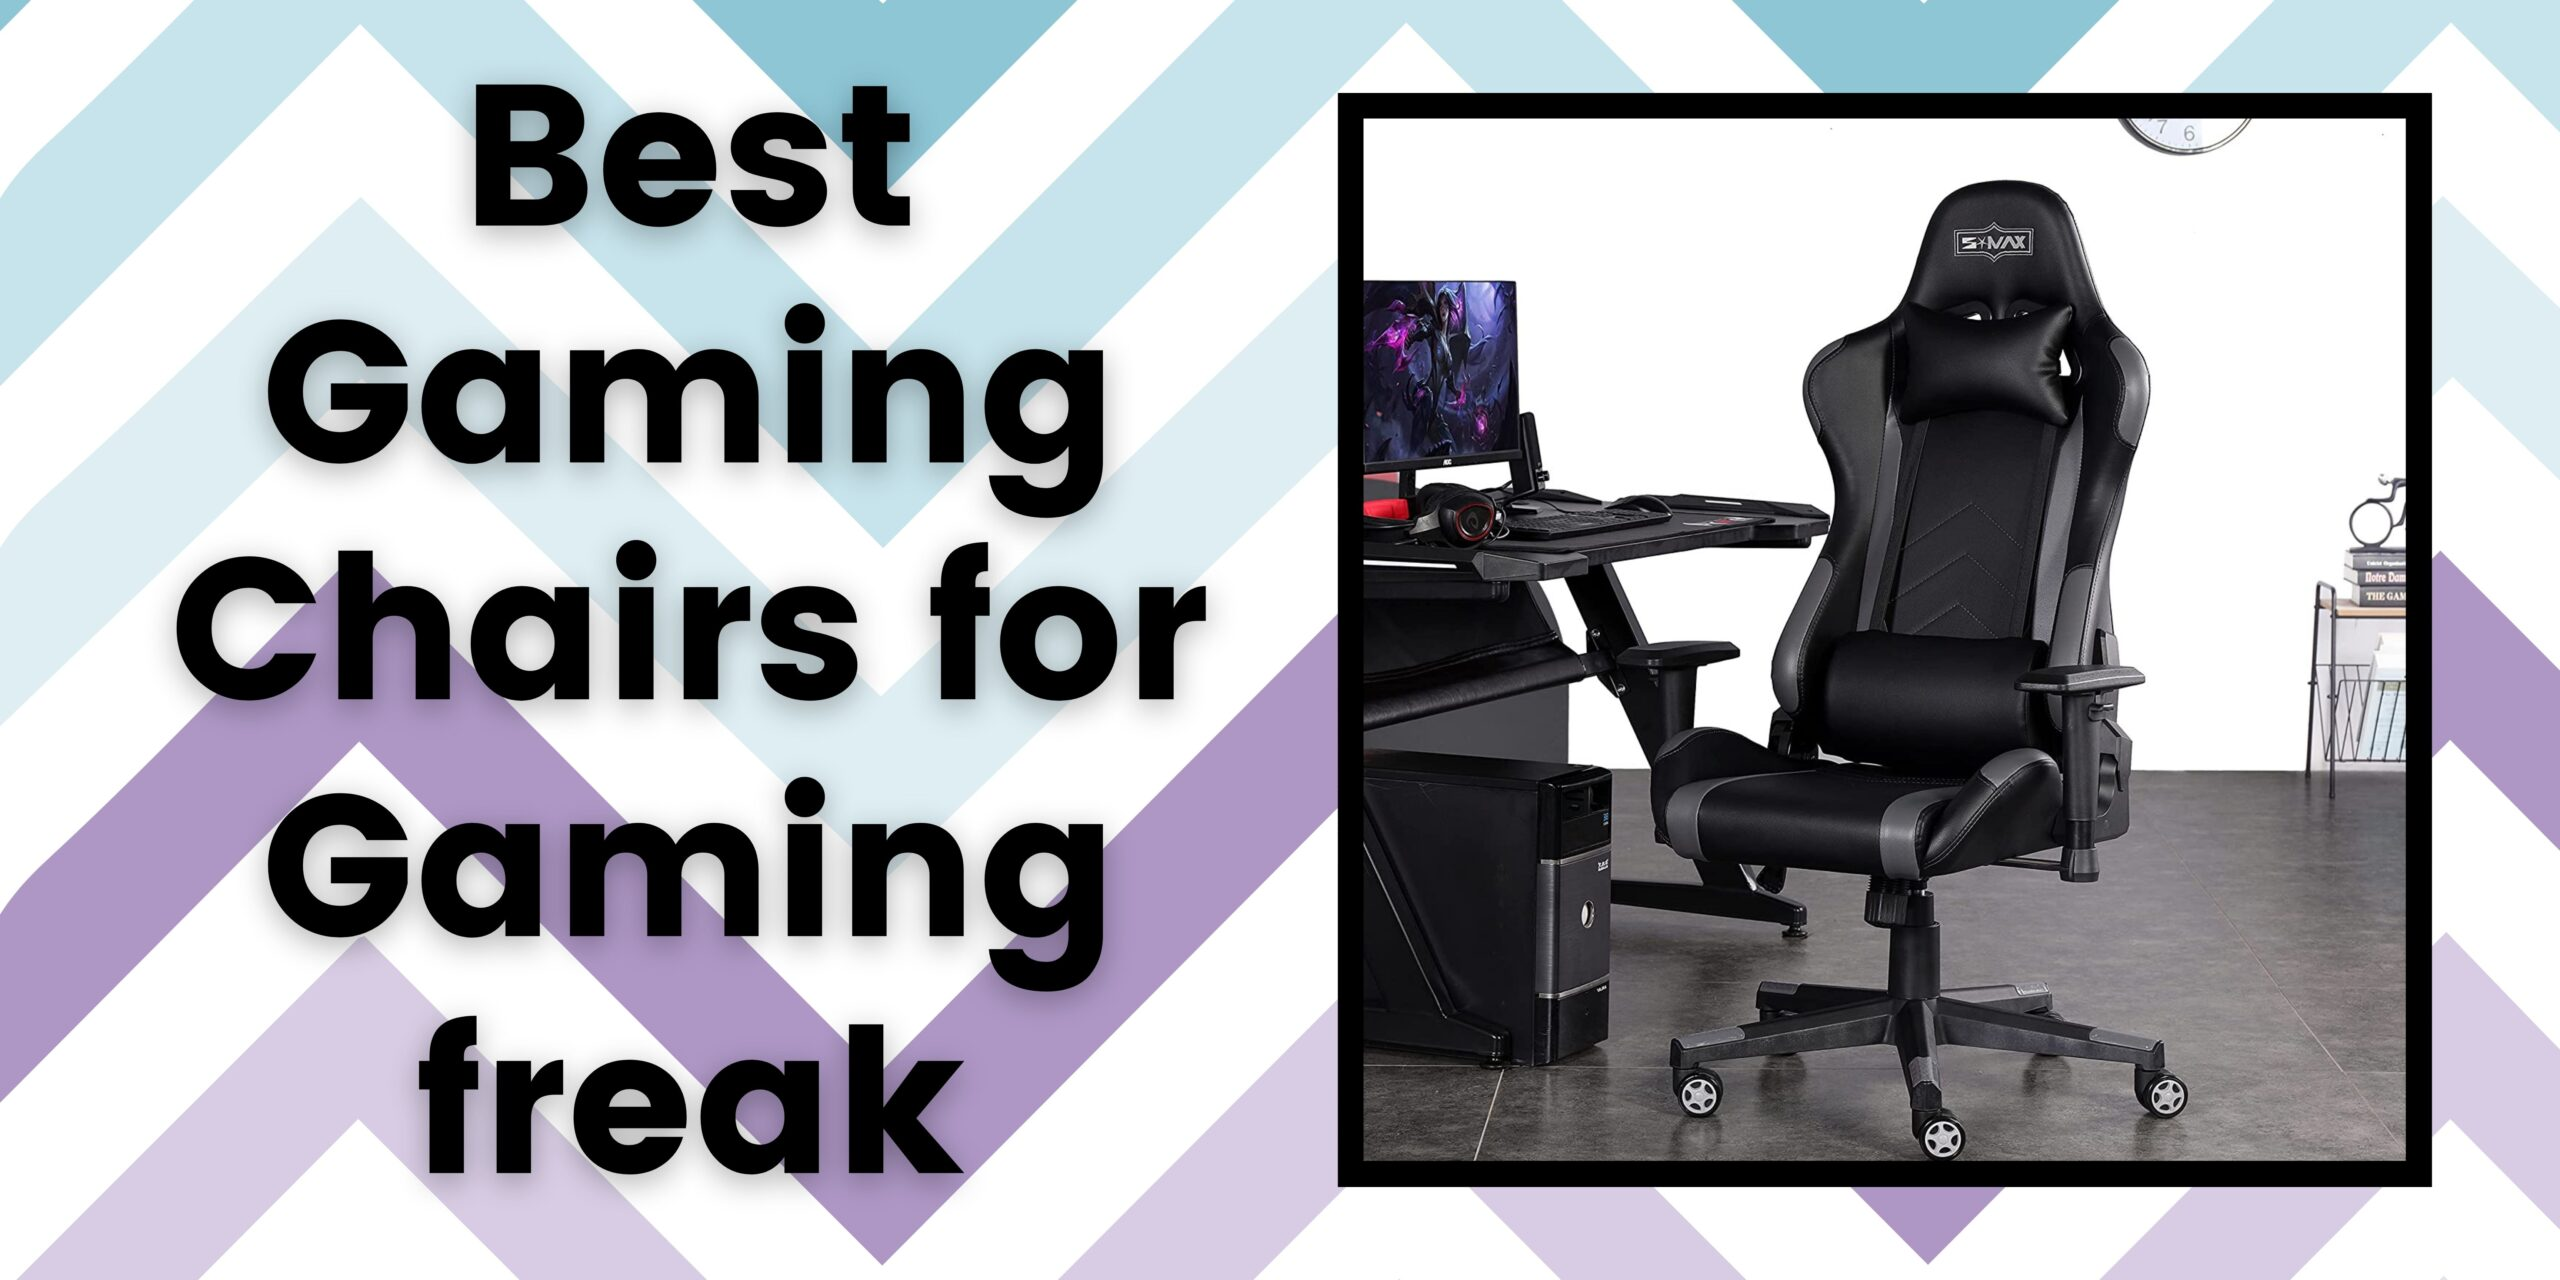 Best 4 Gaming Chairs for Gaming freak